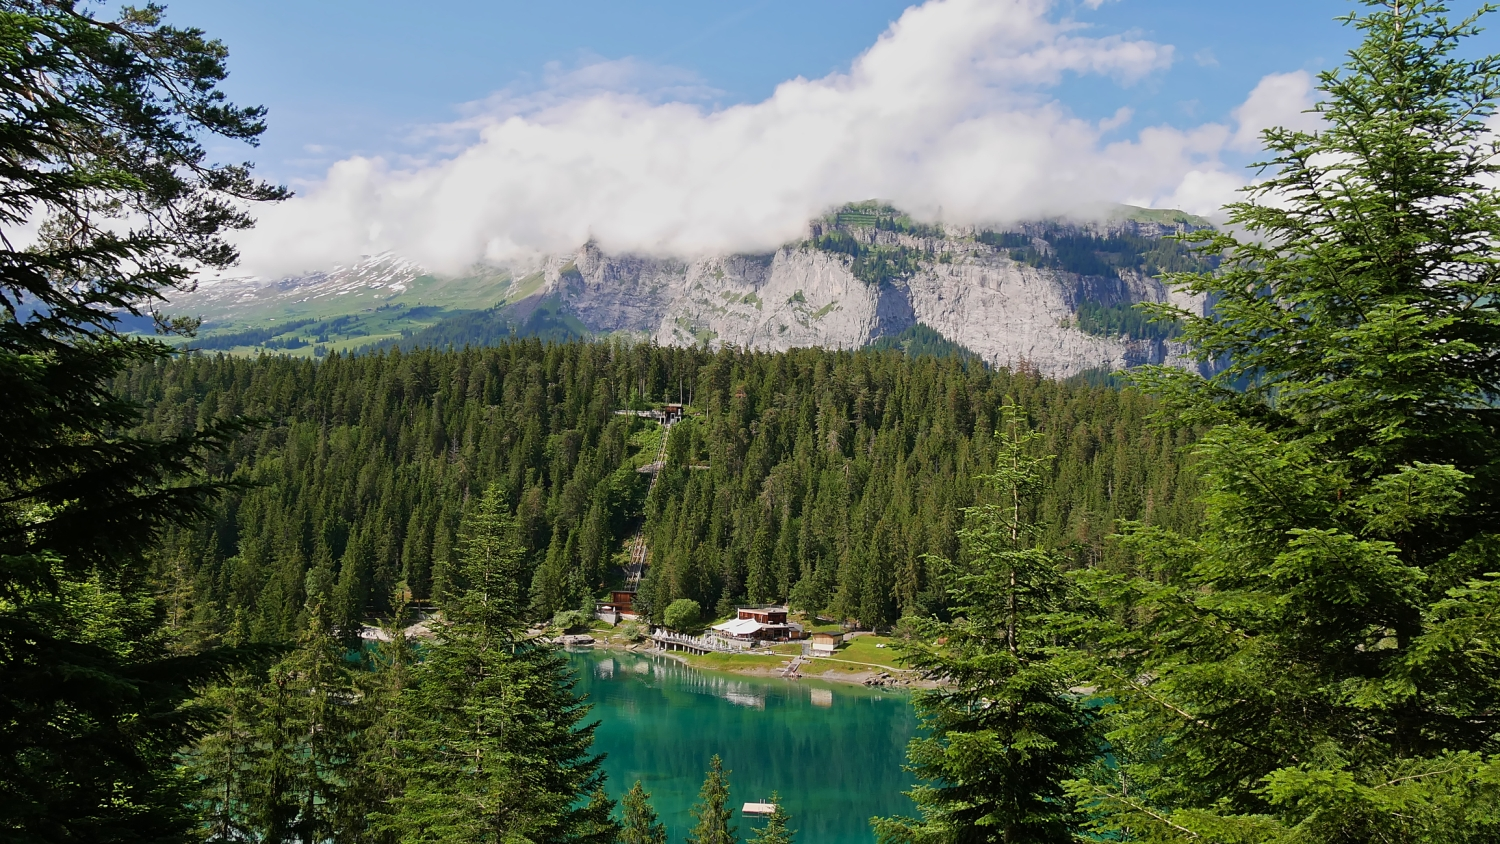 Turquoise colored lake Caumasee surrounded by forest reflected in the water near Flims, Grisons, Switzerland with funicular, restaurant and mountains in background.